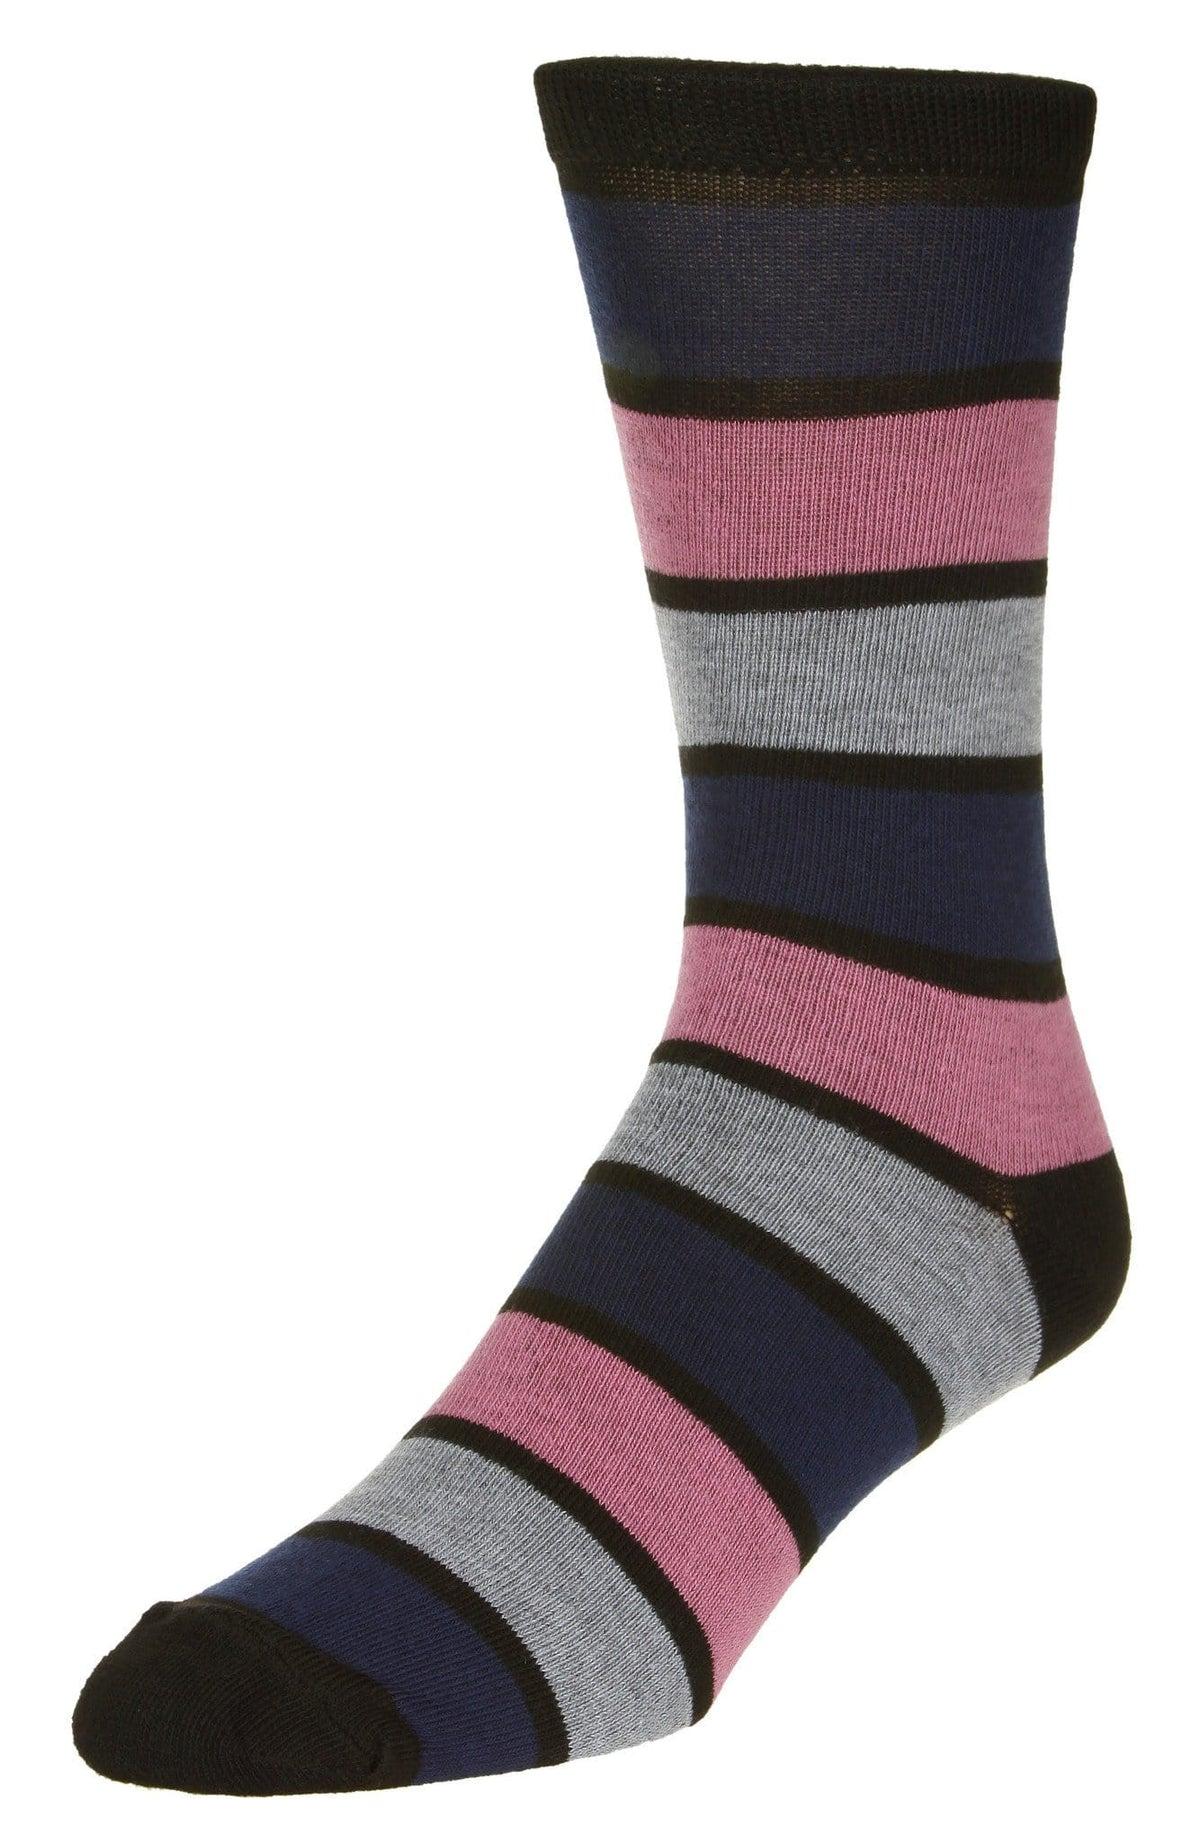 Casual Stripe Pattern Socks - Crew Socks for Men